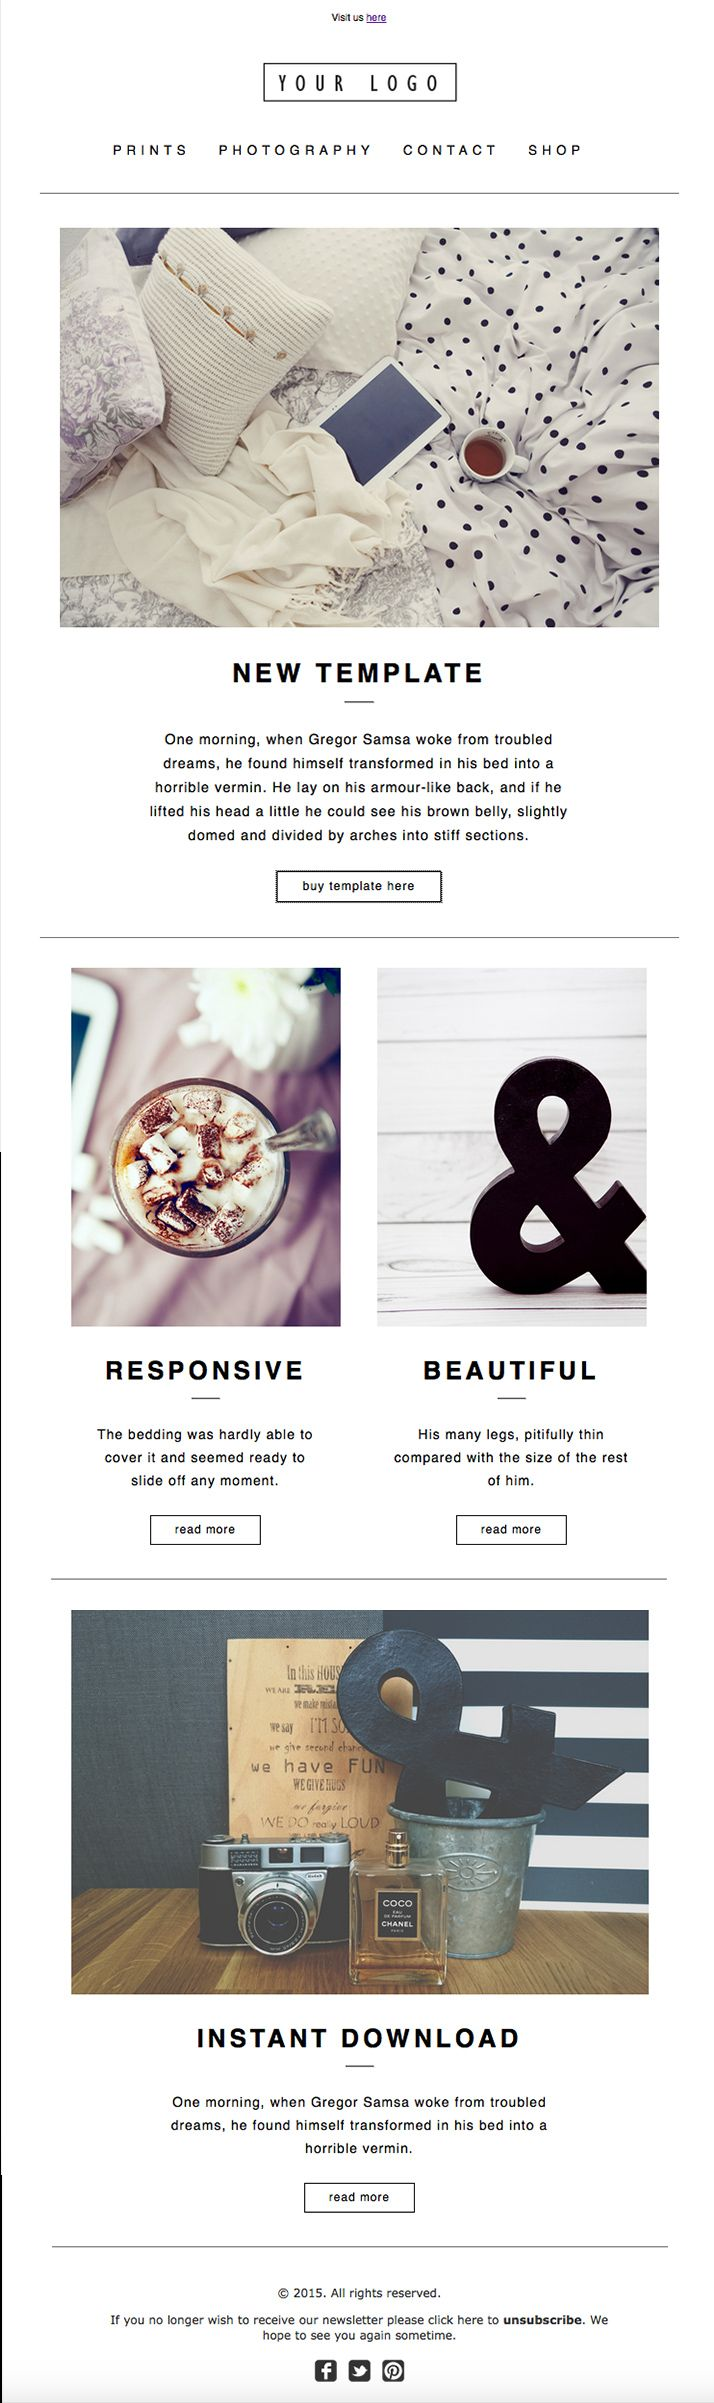 Modern E-Newsletter Template Design. HTML coded, Mailchimp compatible, fully customizable.